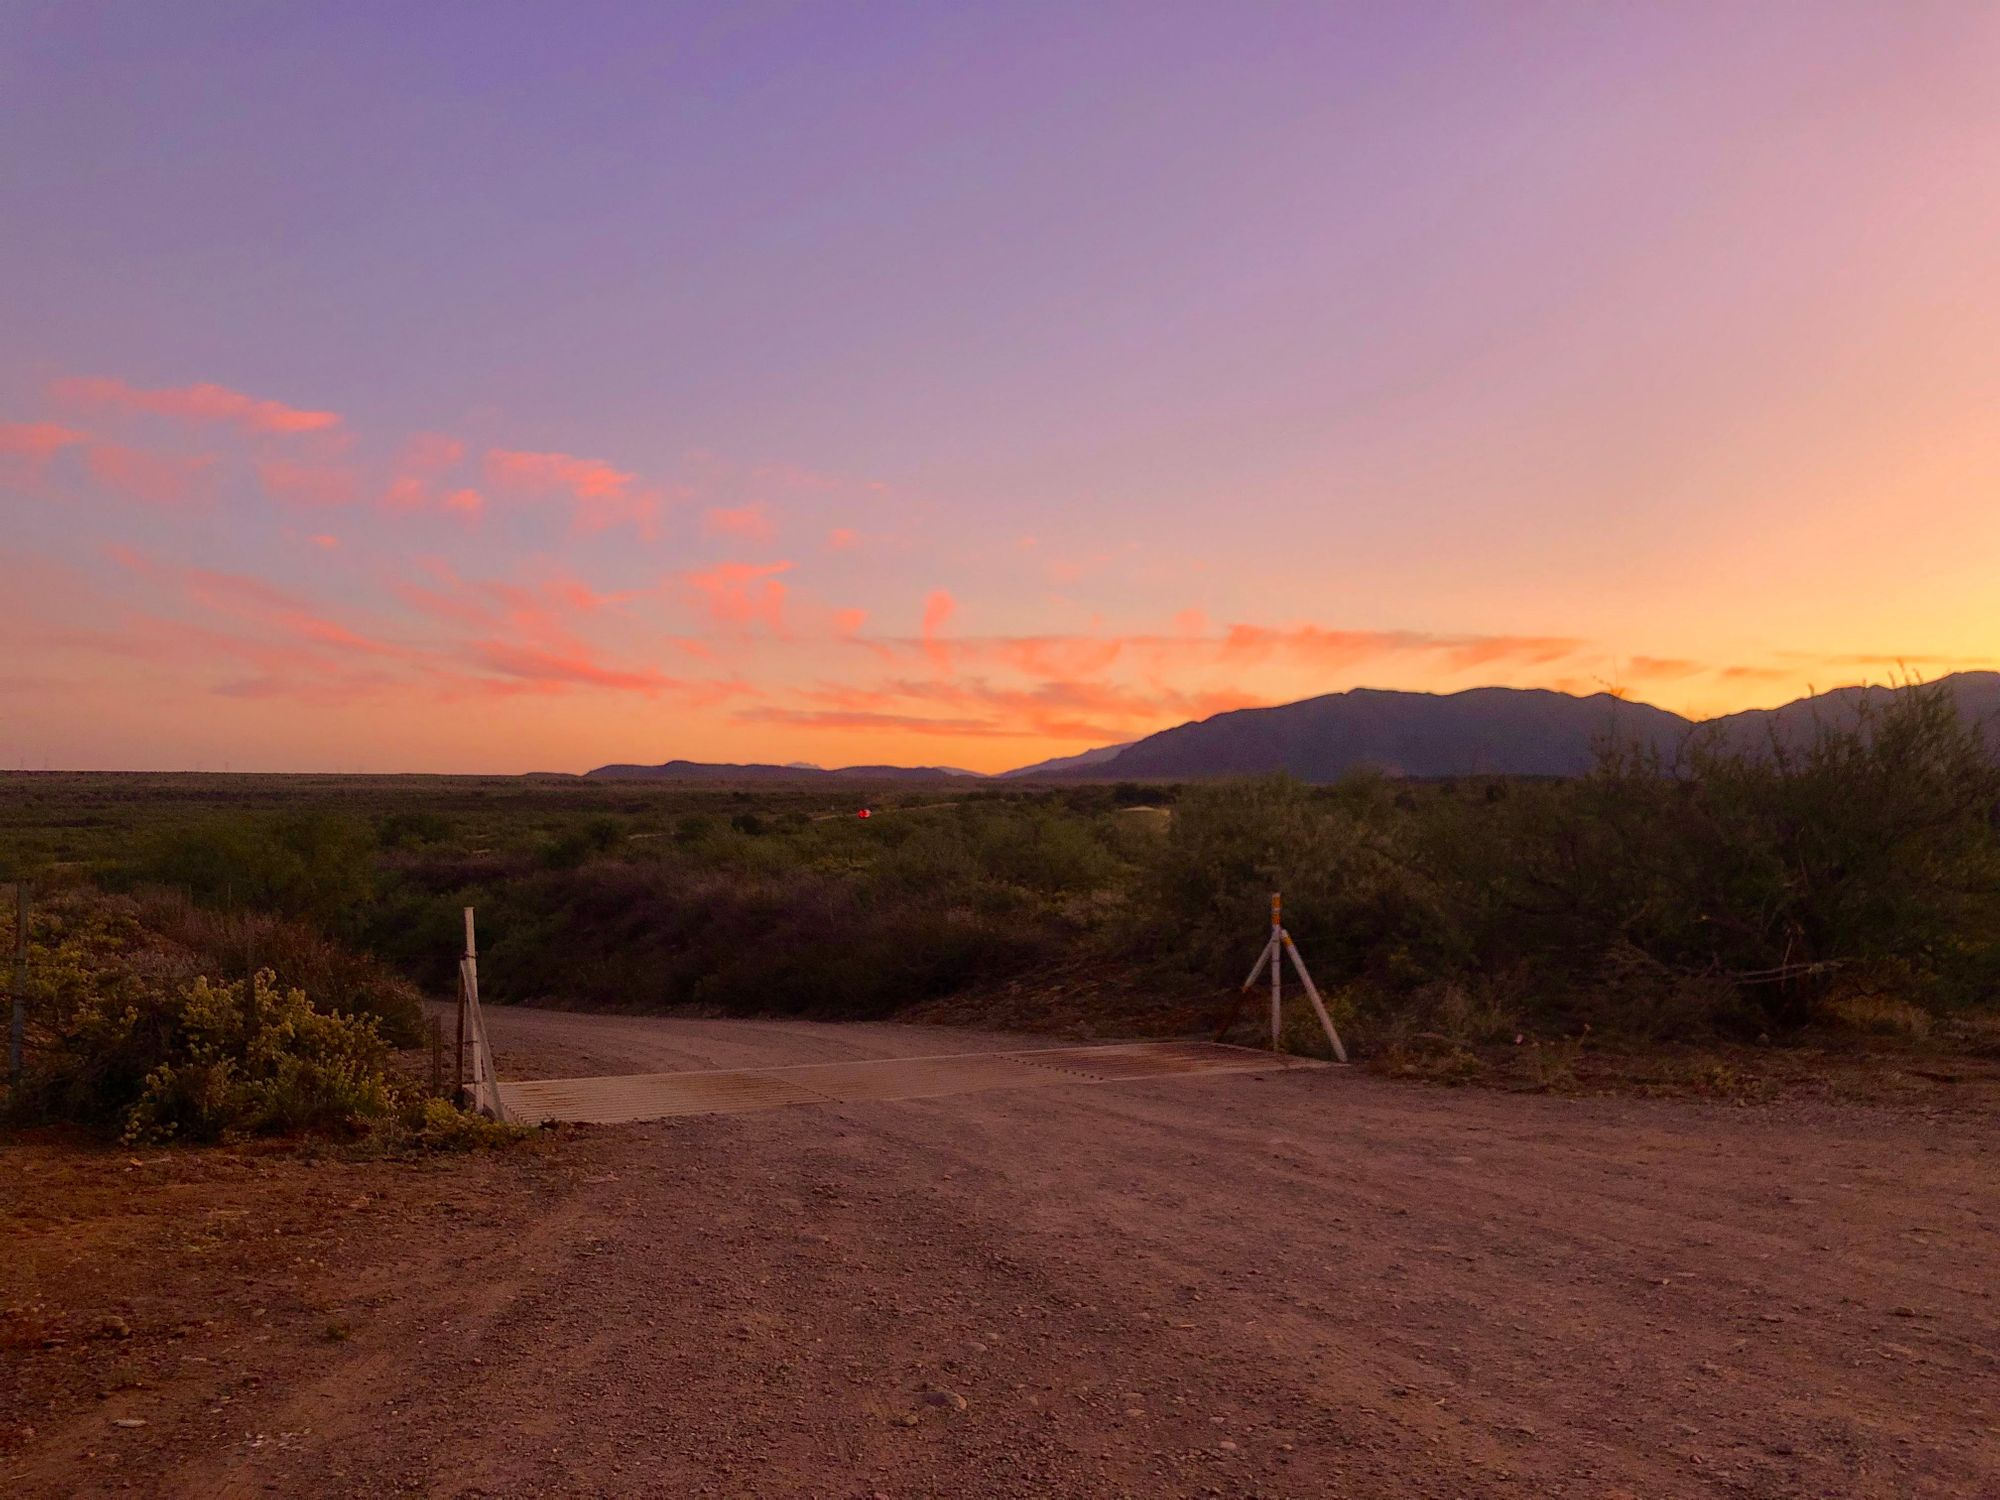 Dirt Road Sunset at Barnhardt Road in Tonto National Forest in Arizona